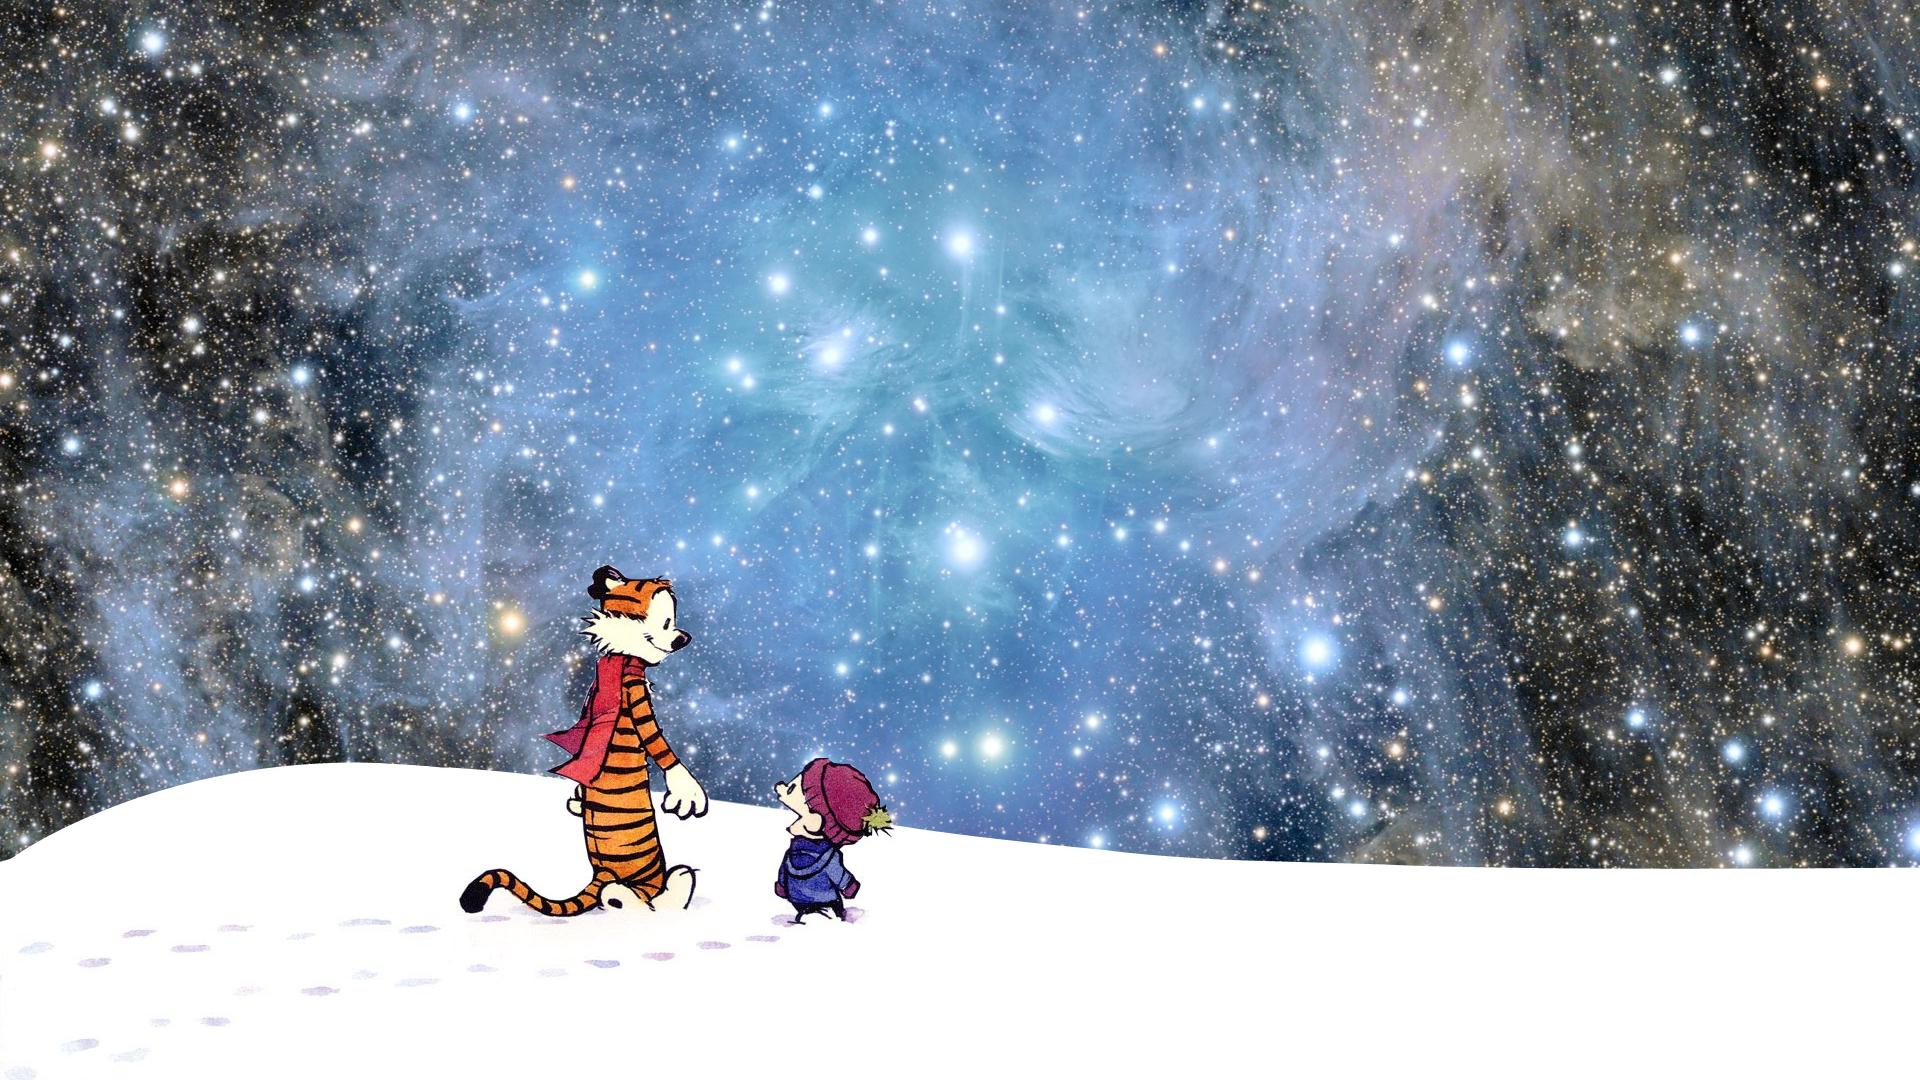 Calvin and Hobbes Wallpapers HD - wallpaper.wiki